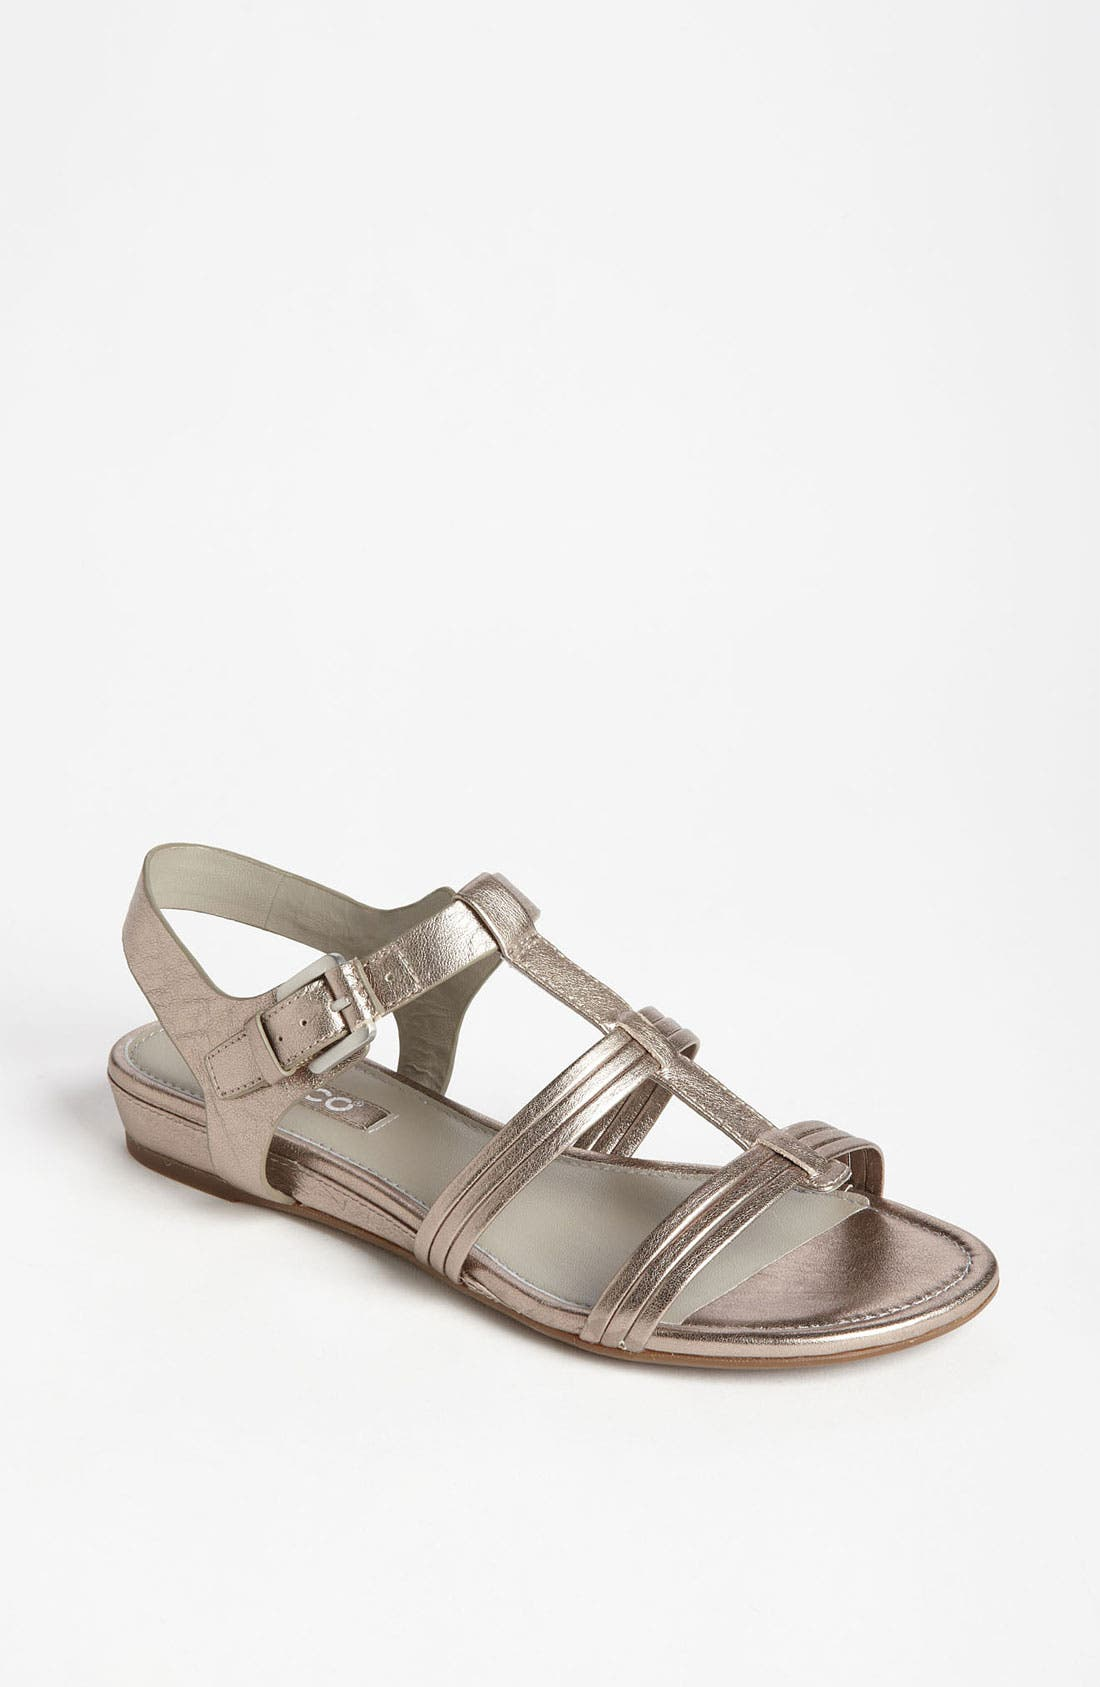 Alternate Image 1 Selected - ECCO 'Odense' Sandal